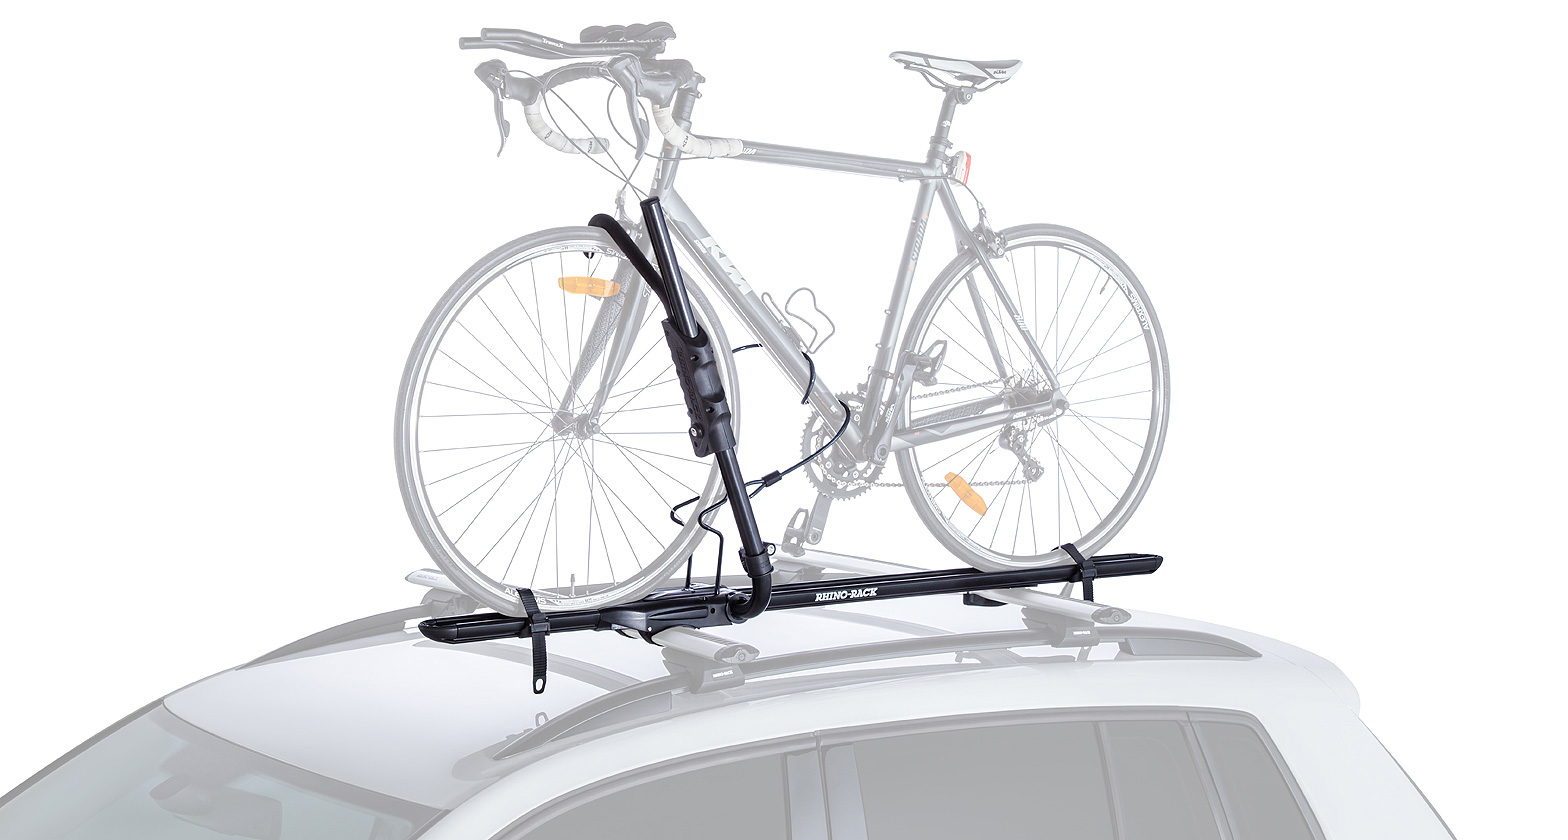 transporting rack safe you ga bike bikes traditional then mount racks upscale marvellous travel ideas roof wheel